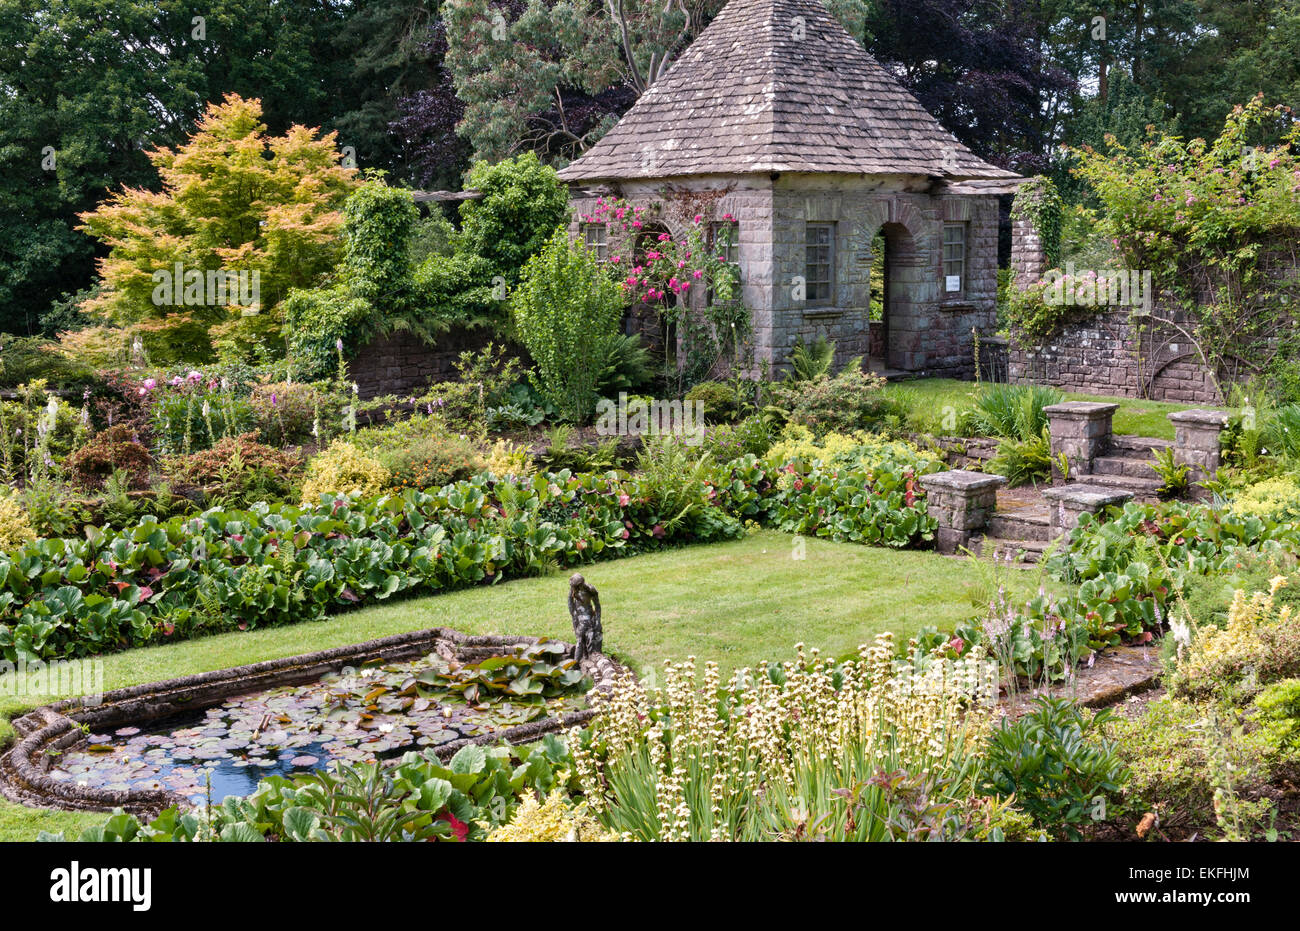 Wyndcliffe Court Gardens, Monmouthshire, Wales, UK. A 1922 Arts and Crafts house with gardens designed by Avray - Stock Image